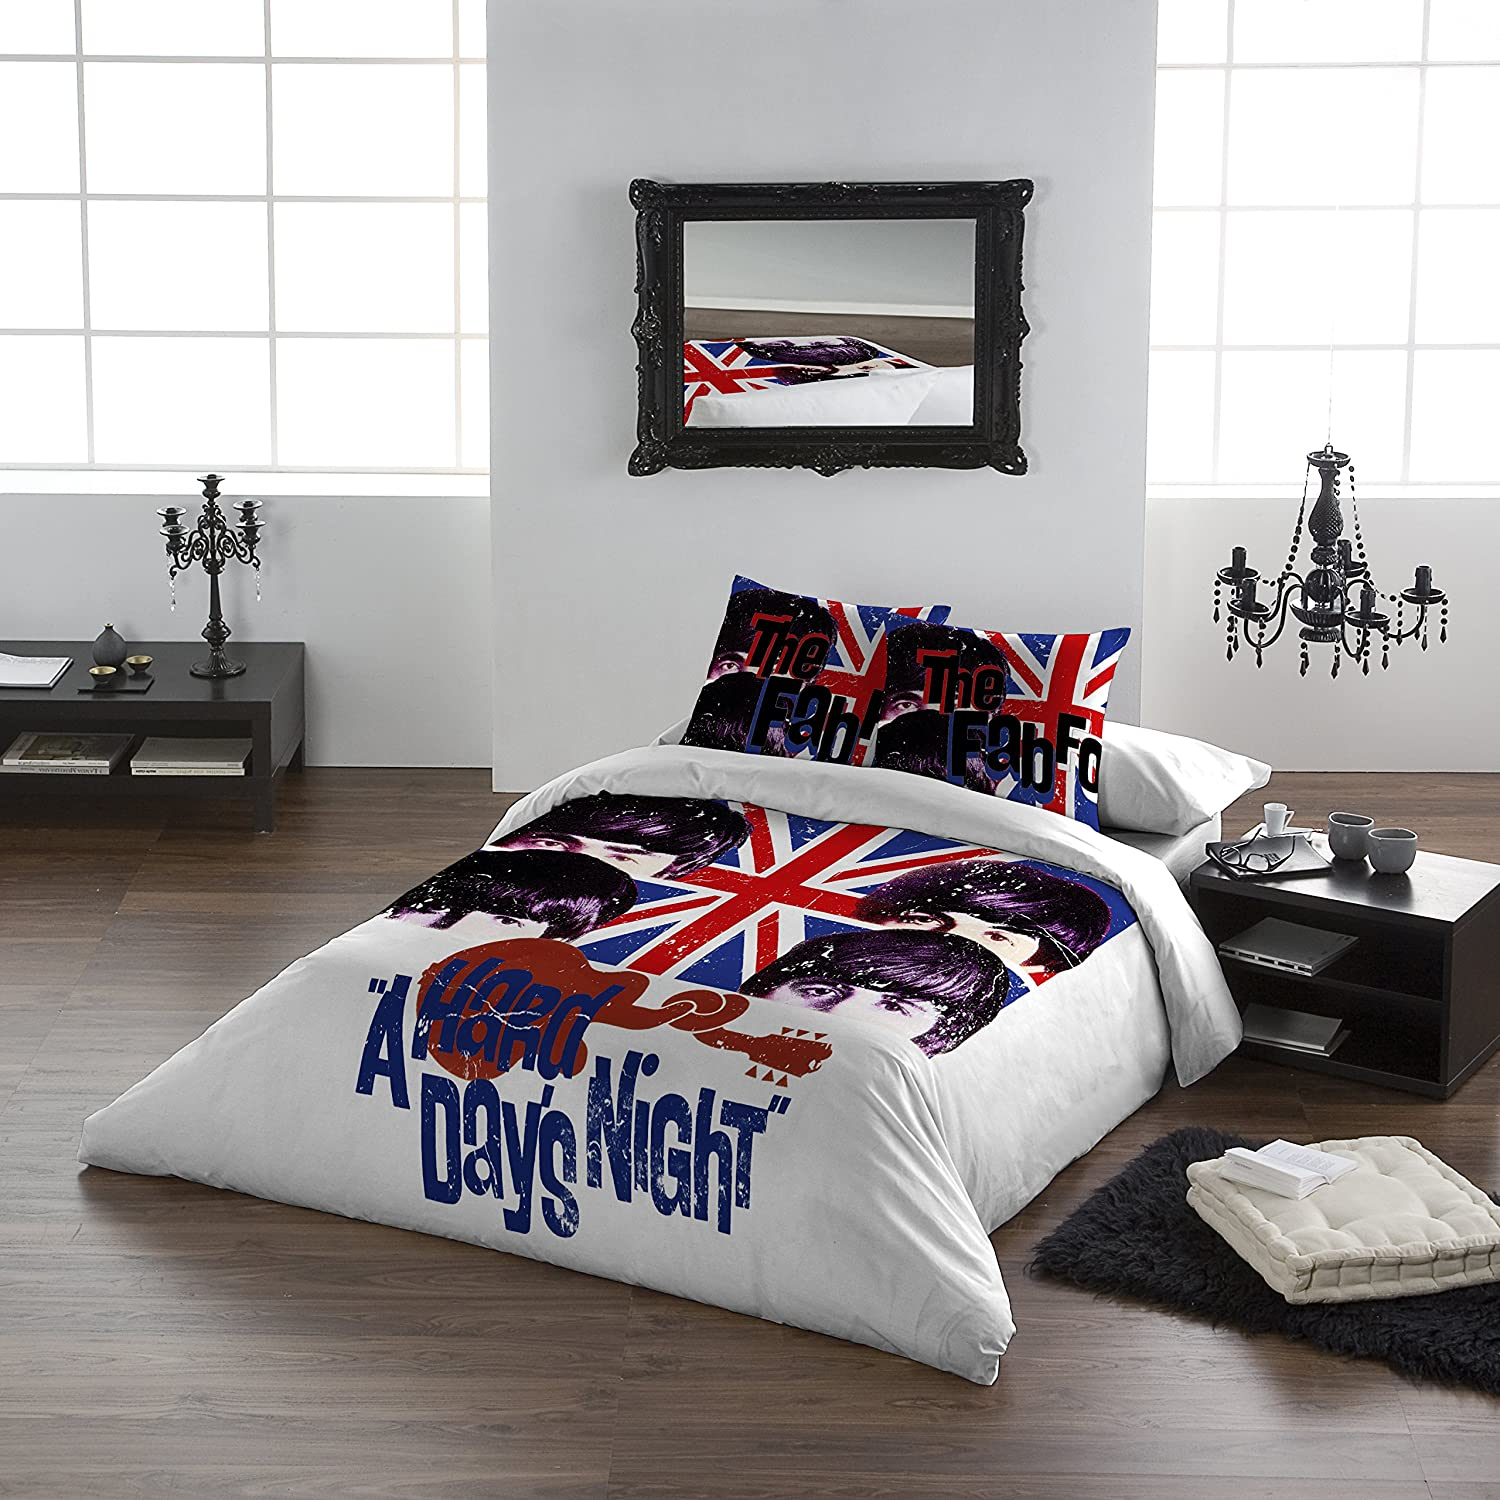 The Beatles - HARD DAY\'S NIGHT - Duvet & Pillowcase Covers Set for  Queensize Bed